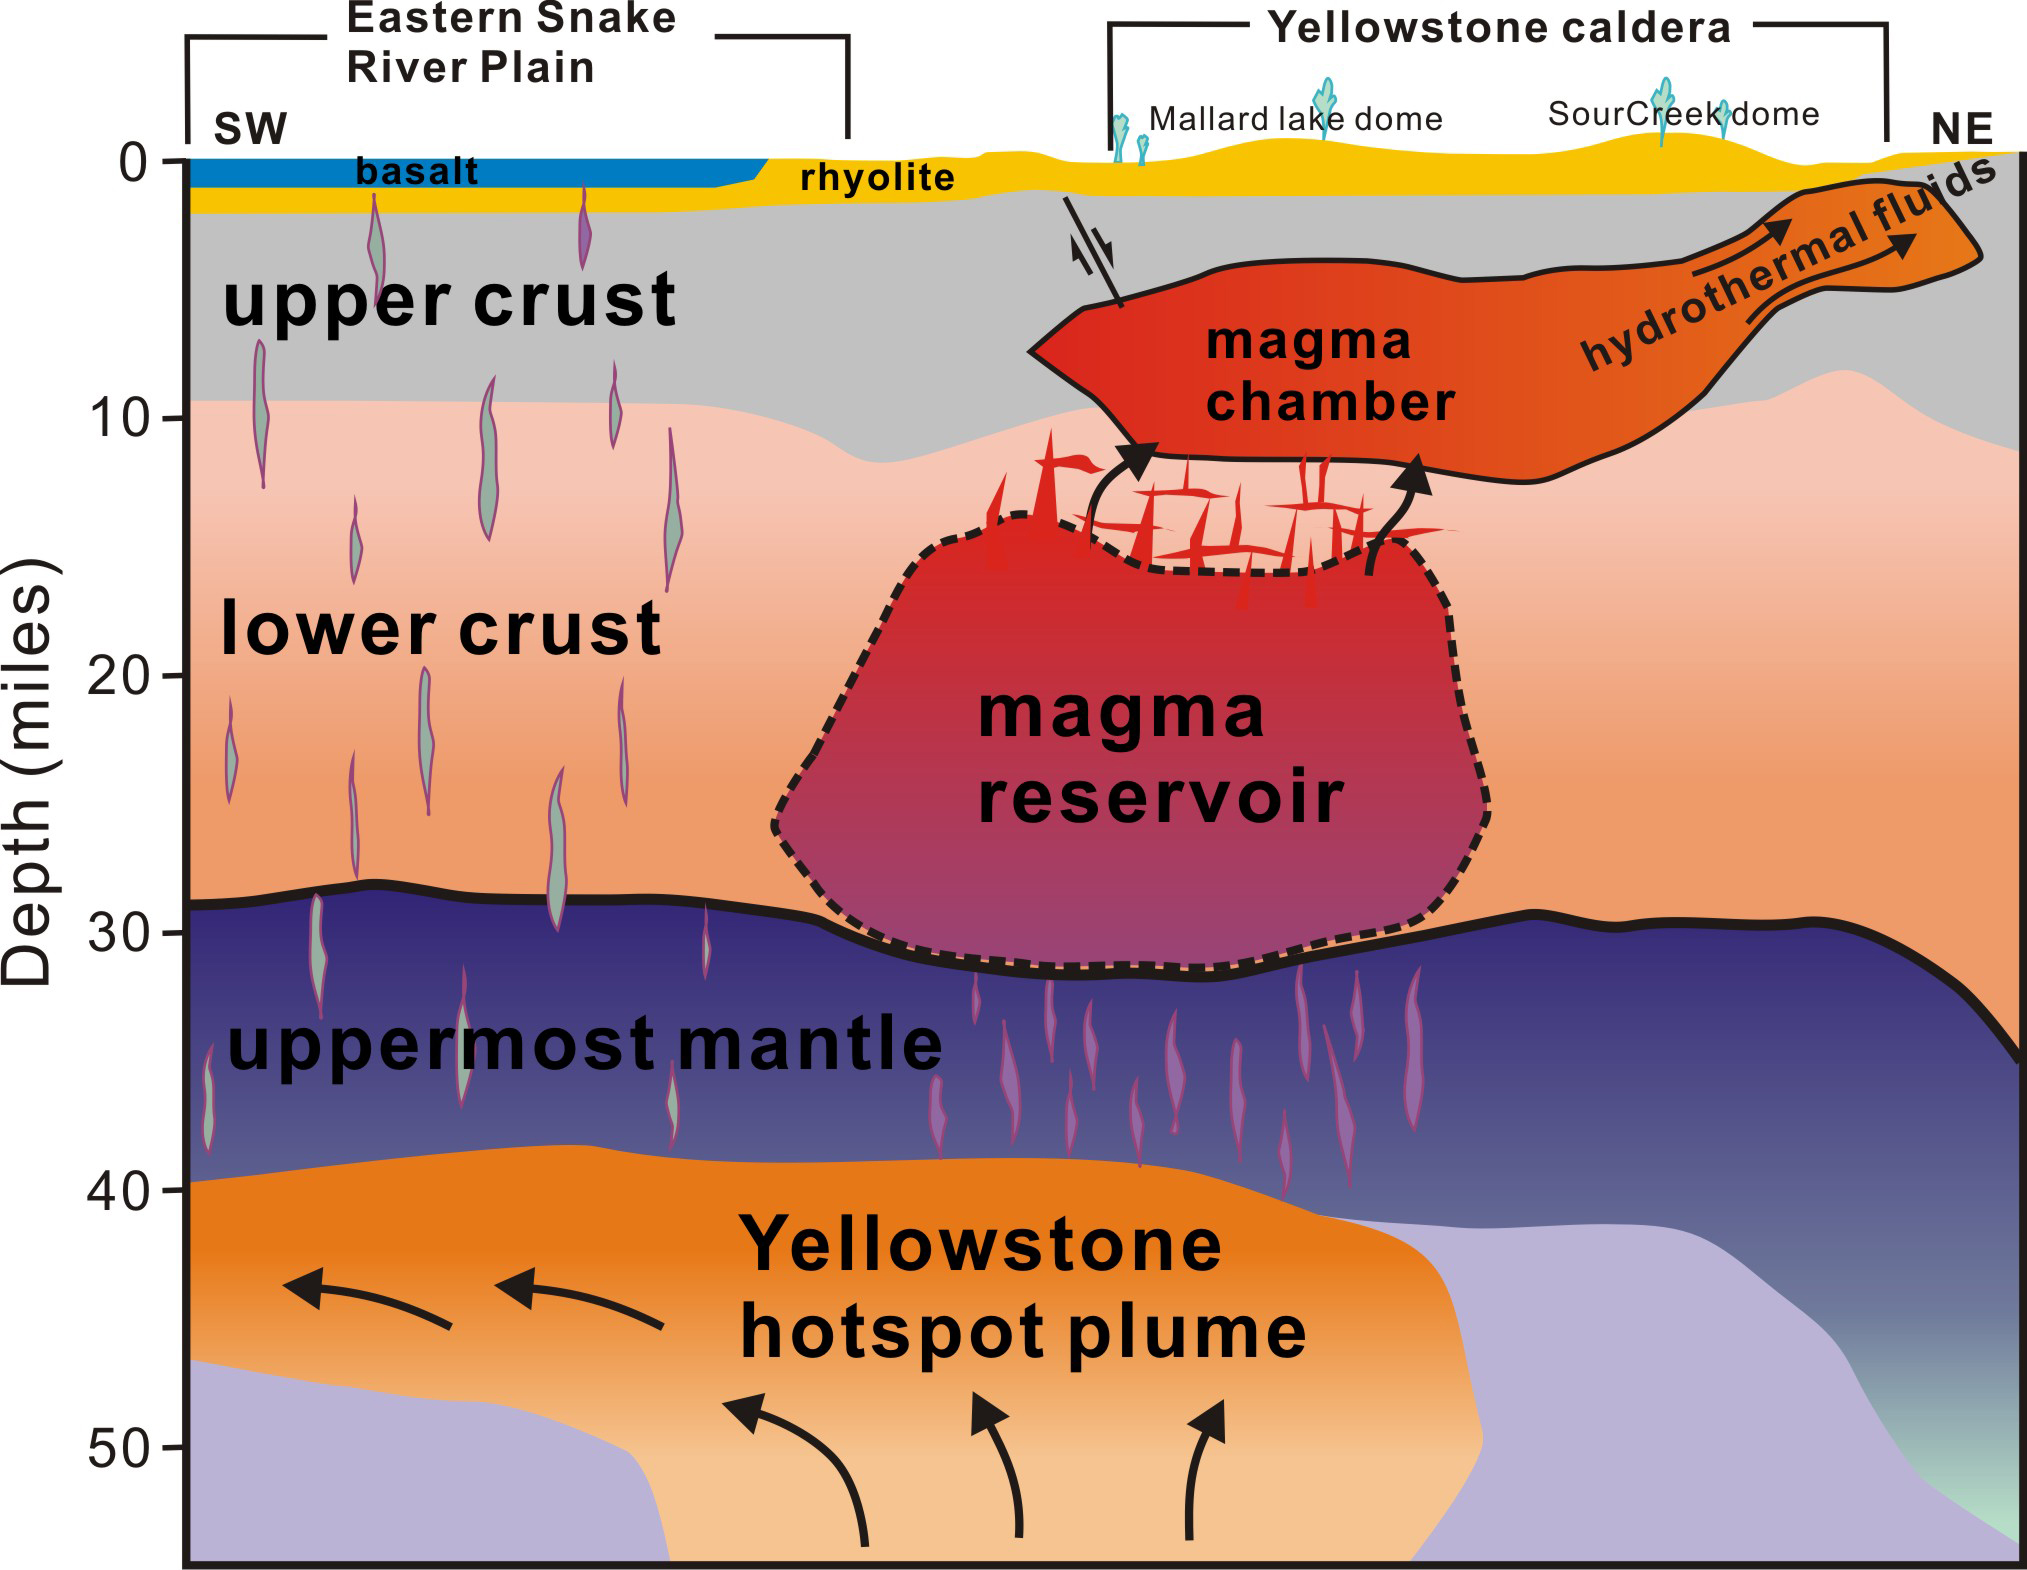 A new University of Utah study in the journal Science provides the first complete view of the plumbing system that supplies hot and partly molten rock from the Yellowstone hotspot to the Yellowstone supervolcano. The study revealed a gigantic magma reservoir beneath the previously known magma chamber. This cross-section illustration cutting southwest-northeast under Yelowstone depicts the view revealed by seismic imaging. Seismologists say new techniques have provided a better view of Yellowstone's plumbing system, and that the supervolcano hasn't grown larger or closer to erupting. They estimate the annual chance of a Yellowstone supervolcano eruption is 1 in 700,000.